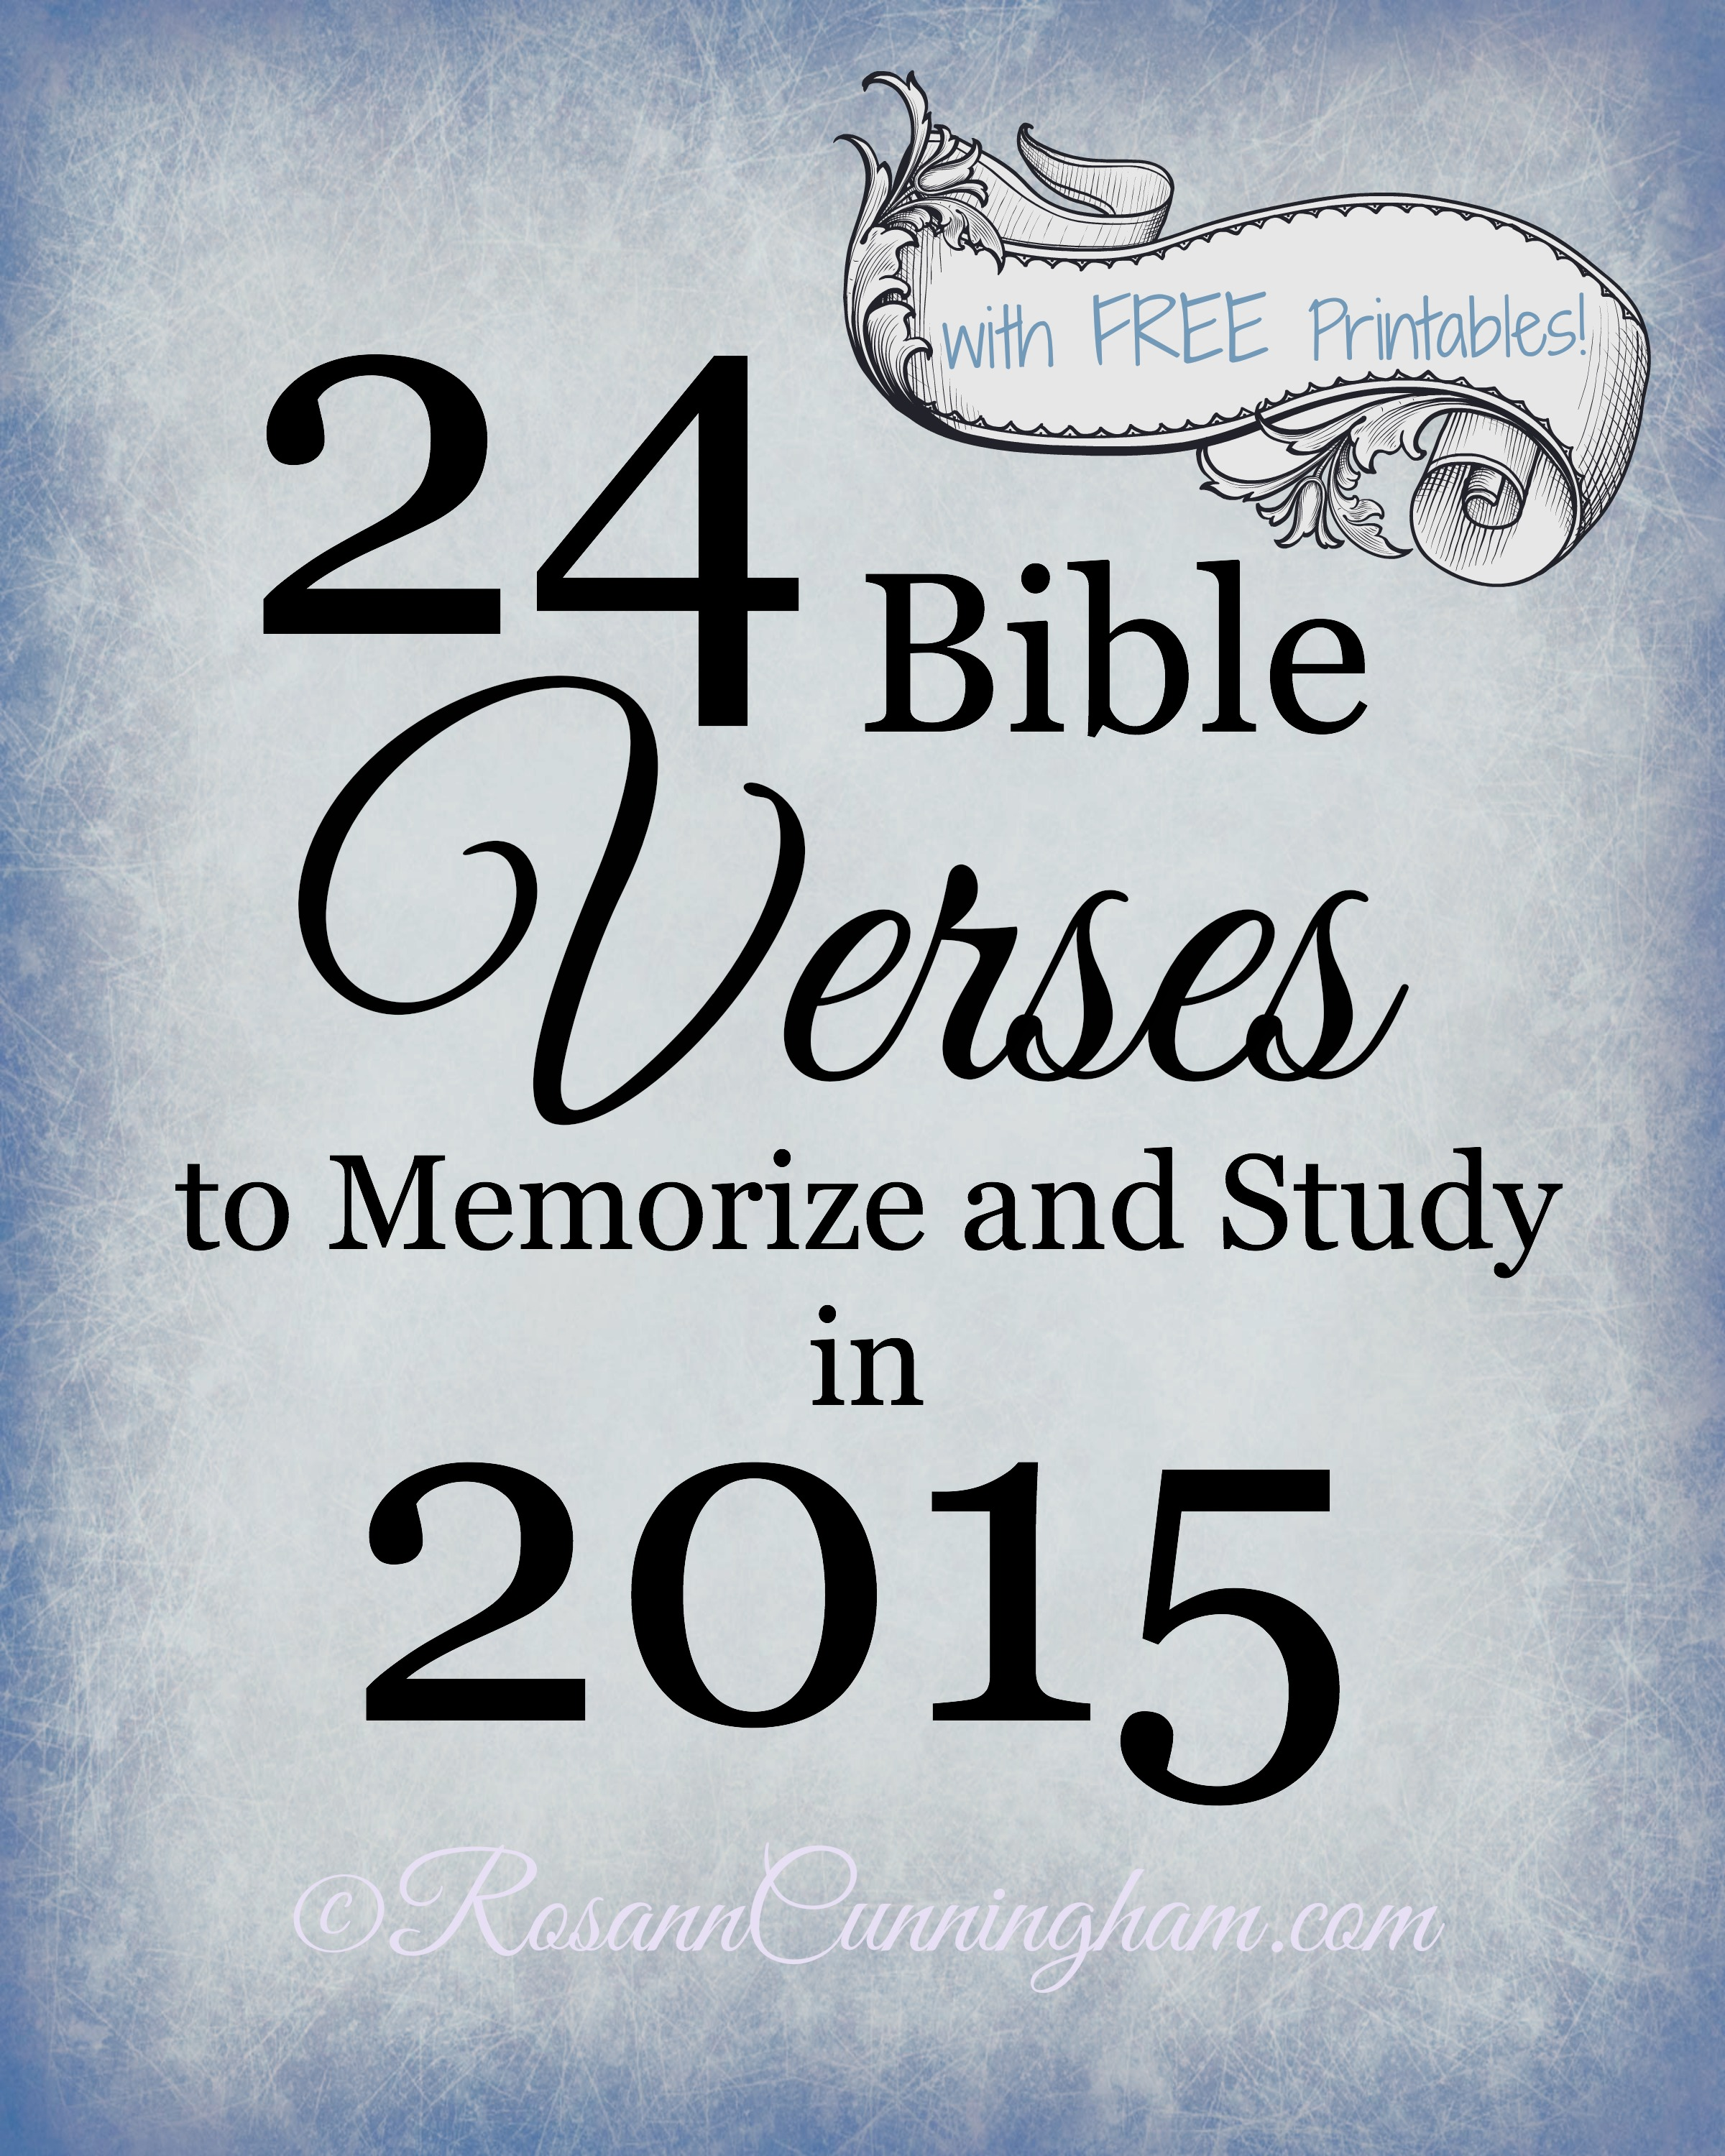 24 Bible Verses to Memorize and Study in 2015 - with FREE Printables ...